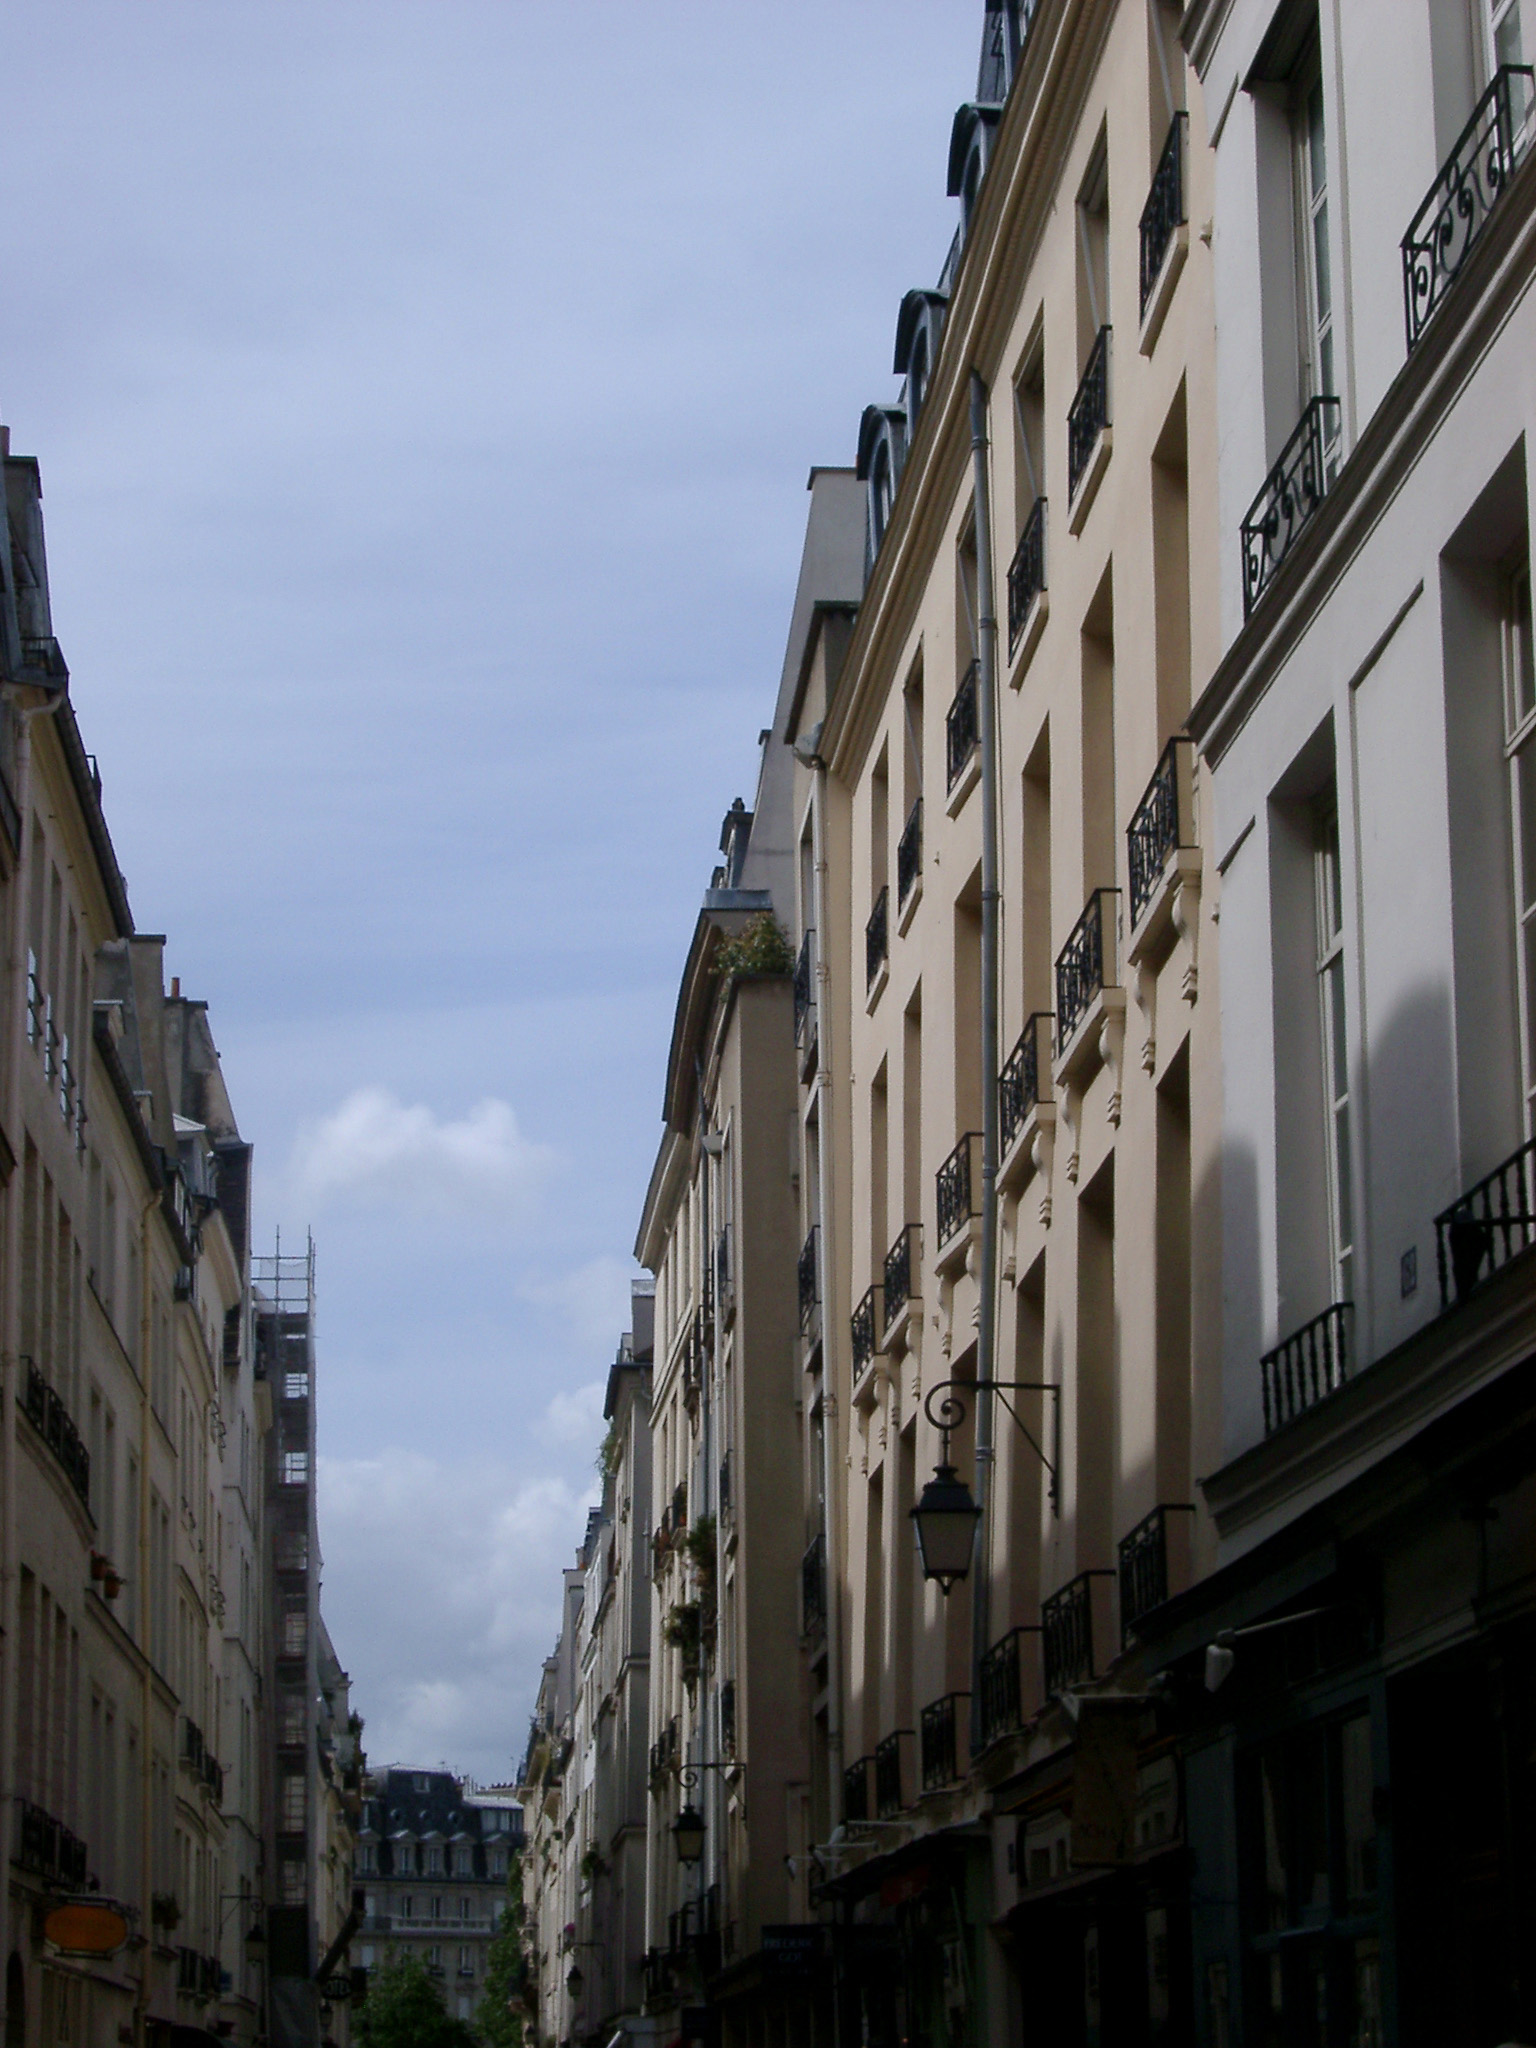 Paris, France, street view looking up at the historic facades of the buildings lining the road against a blue sky